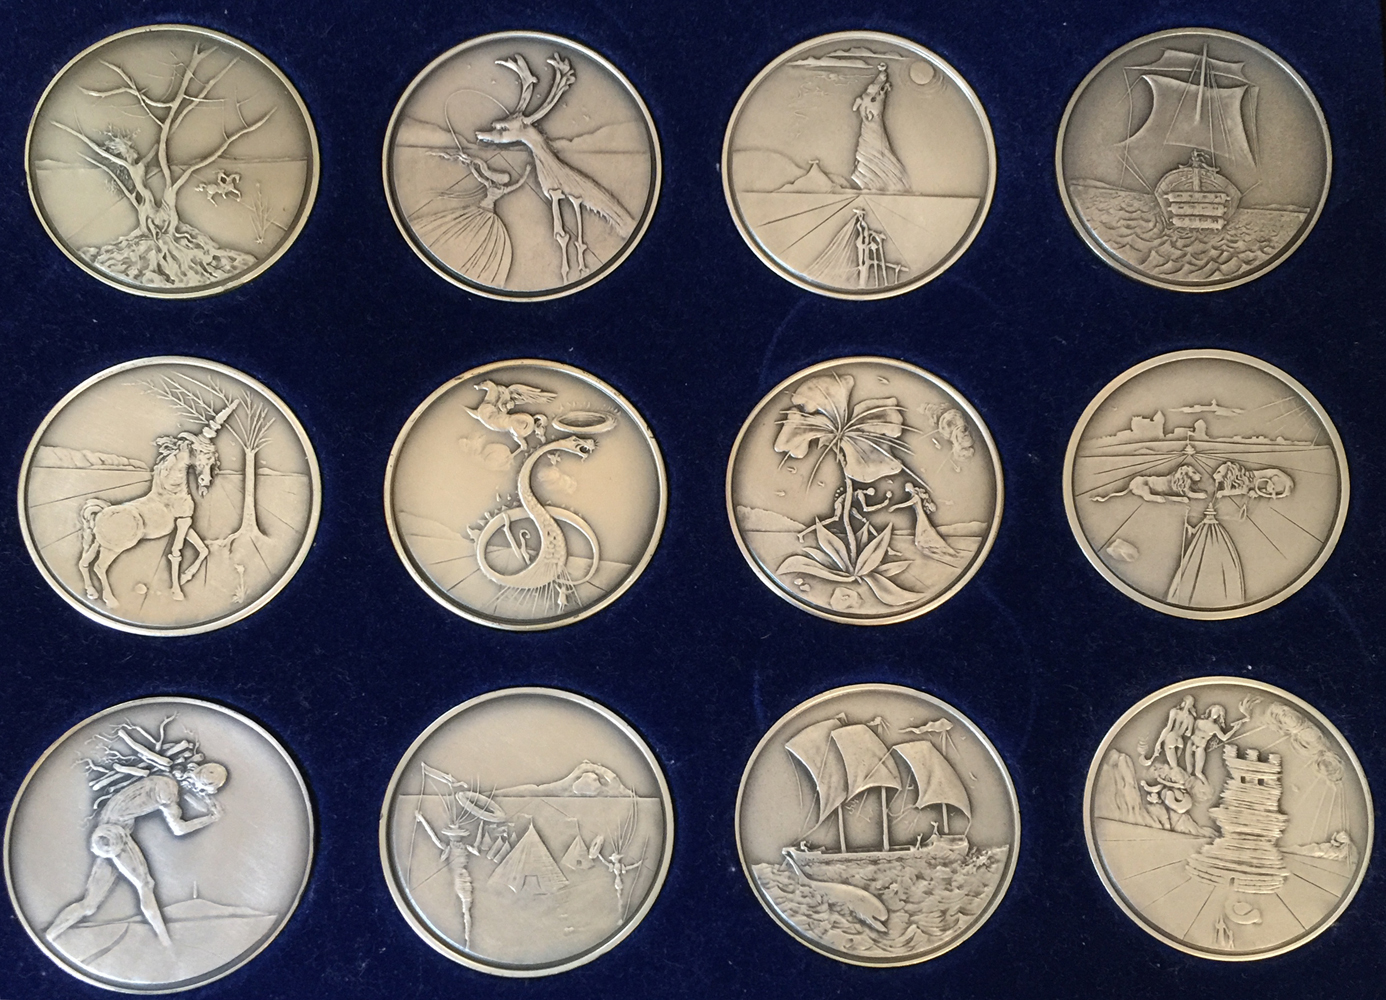 Twelve Tribes of Israel Silver Coins  1973